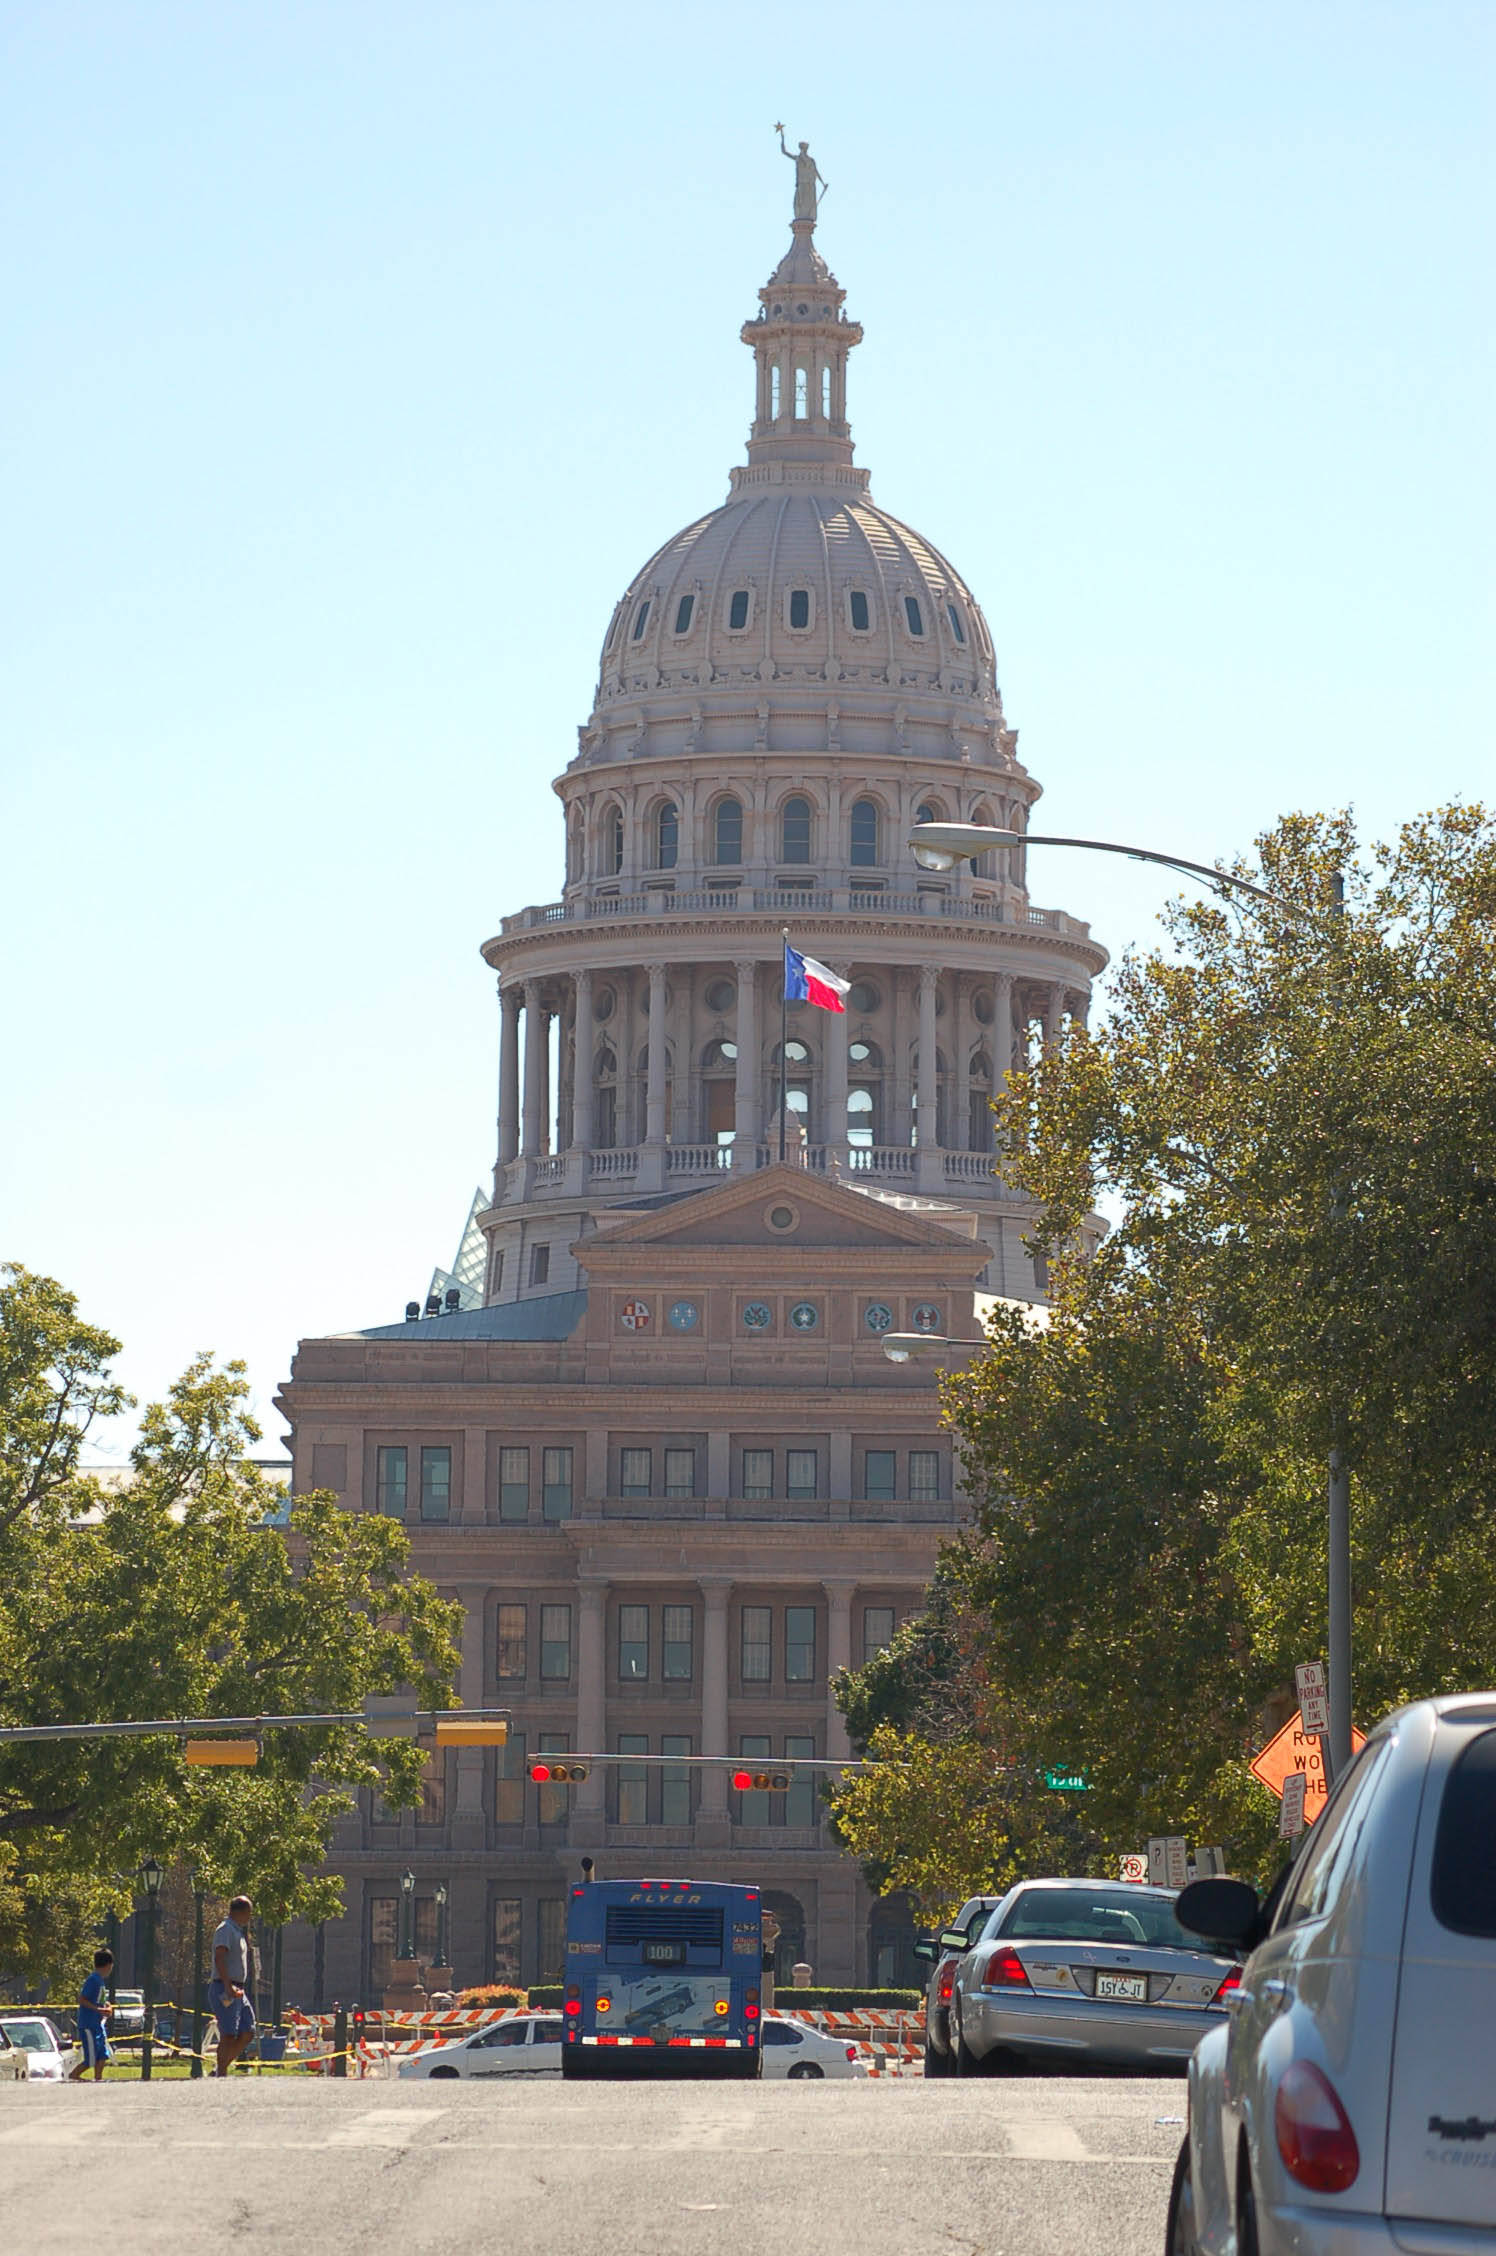 The Capitol Building in Austin